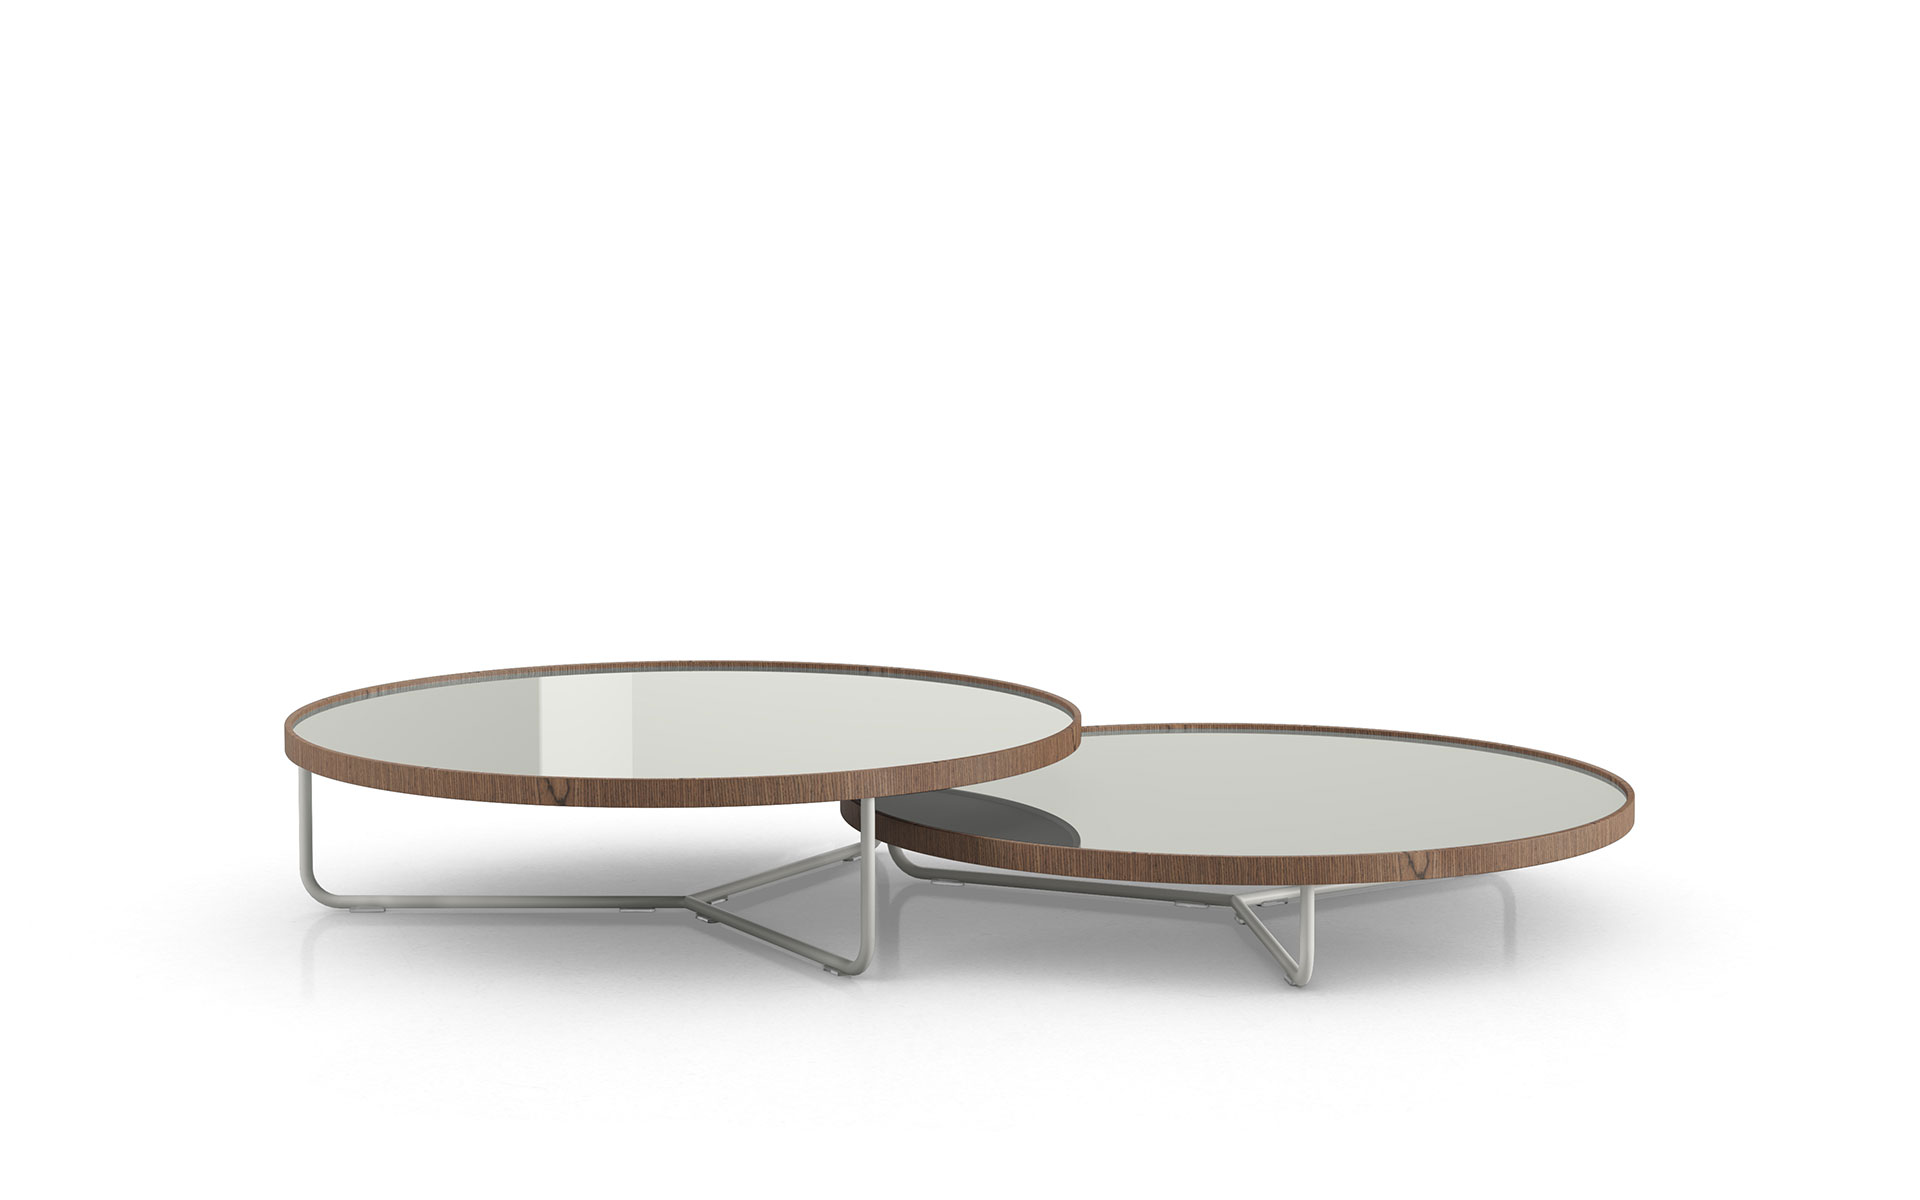 Table Resine Génial Modloft Amsterdam Outdoor Ping Pong Table Of 33 Inspirant Table Resine